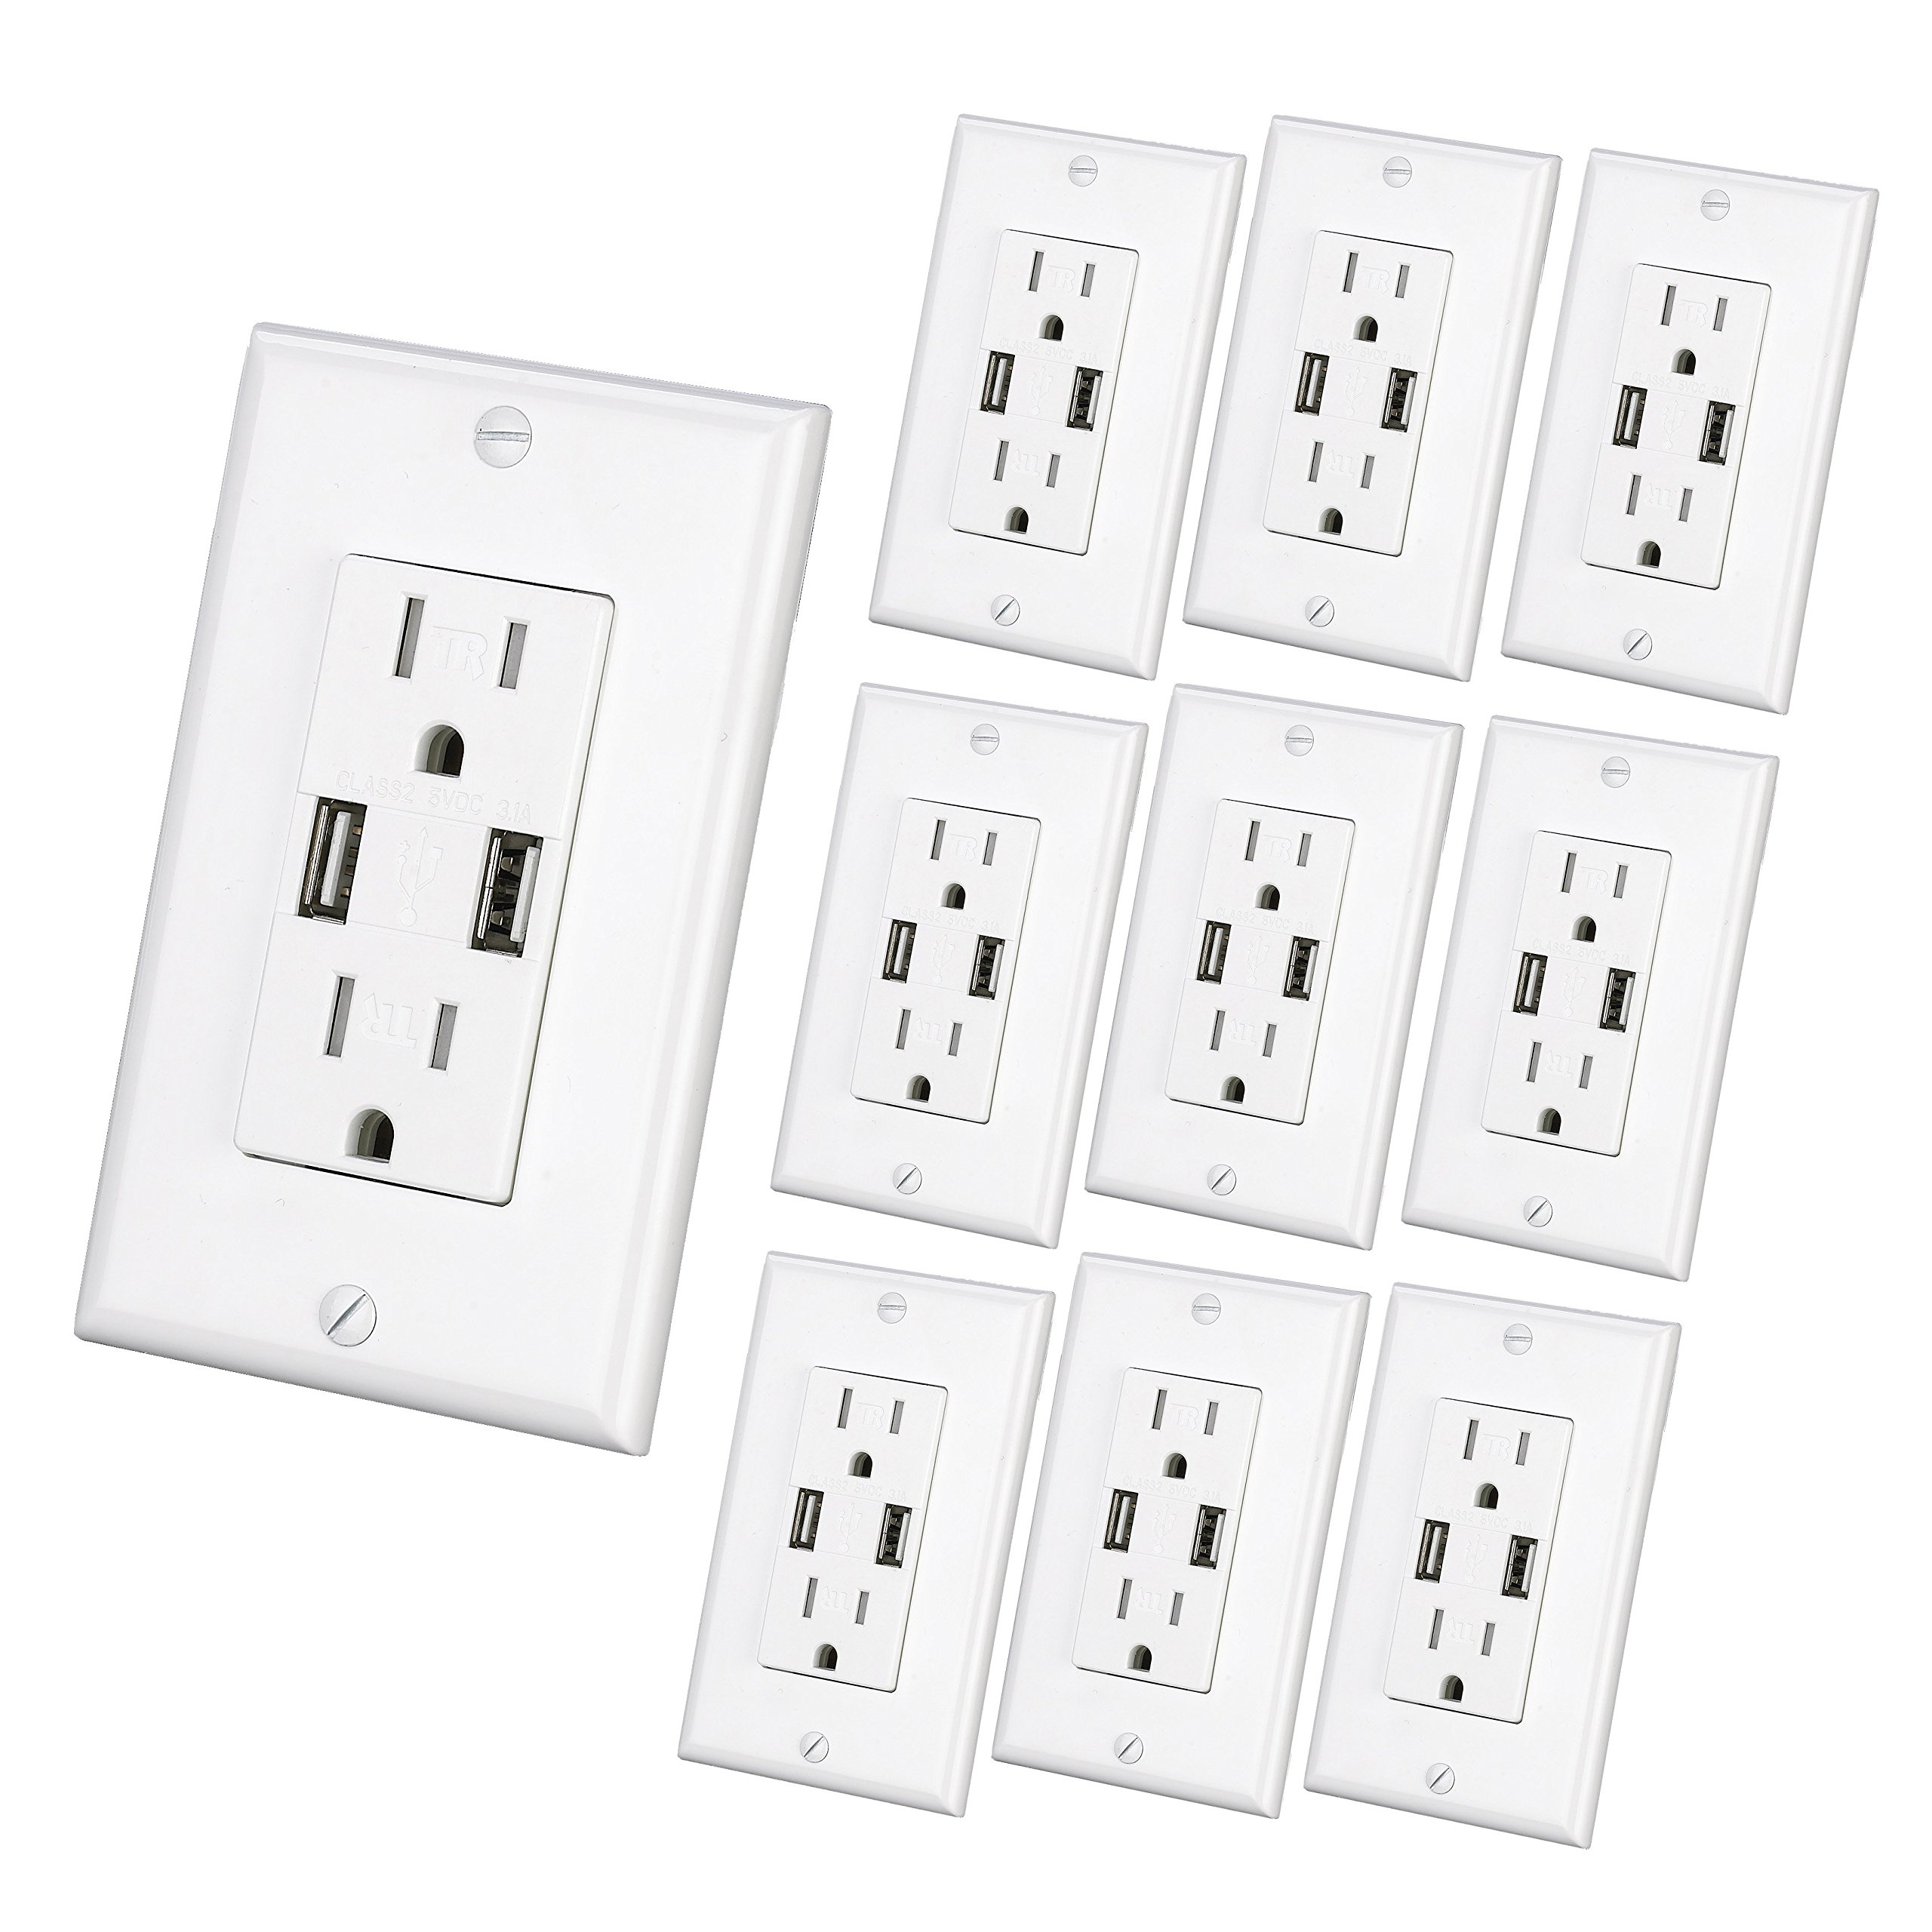 USB Charger Wall Outlet Dual High Speed Duplex Receptacle 15 Amp, Smart 4.8A Quick Charging Capability, Tamper Resistant Outlet Wall plate Included UL Listed White MICMI C48 (4.8A USB outlet 10pack)